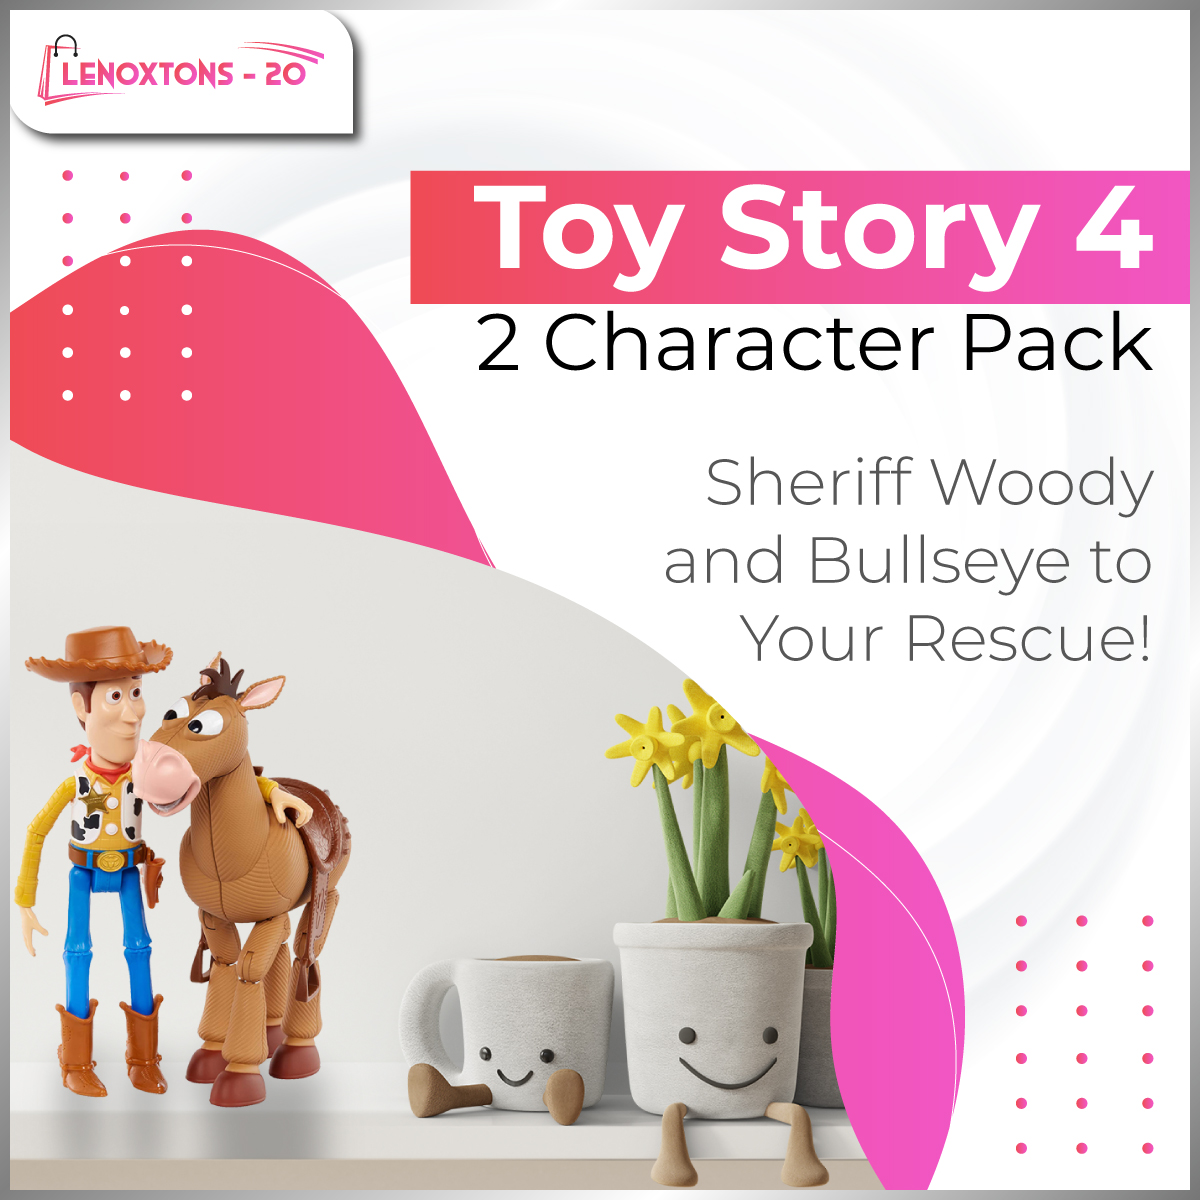 Delight your kids with the special Toy Story 4, 2-Character Pack. These toys will encourage kids to play inside, which is crucial in these times. Give wings to their imagination with this exciting gift. https://t.co/EdJOTiRm0W #ToyStory4 #Miami #Amazon #Florida #kids #Playtime https://t.co/Yp6jAqLEUp